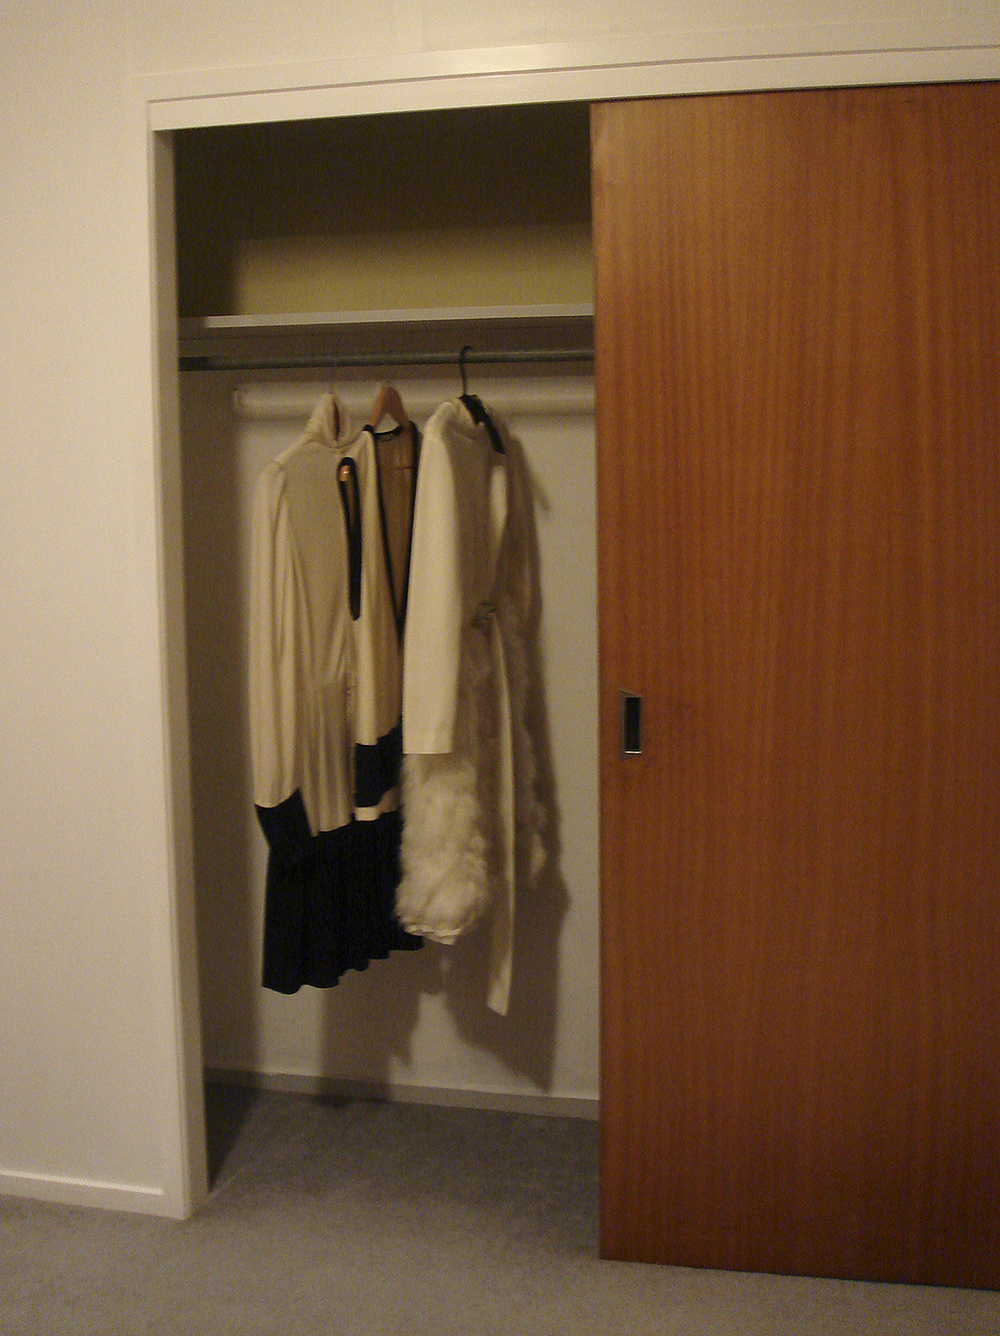 3 Beige Garments, 2006